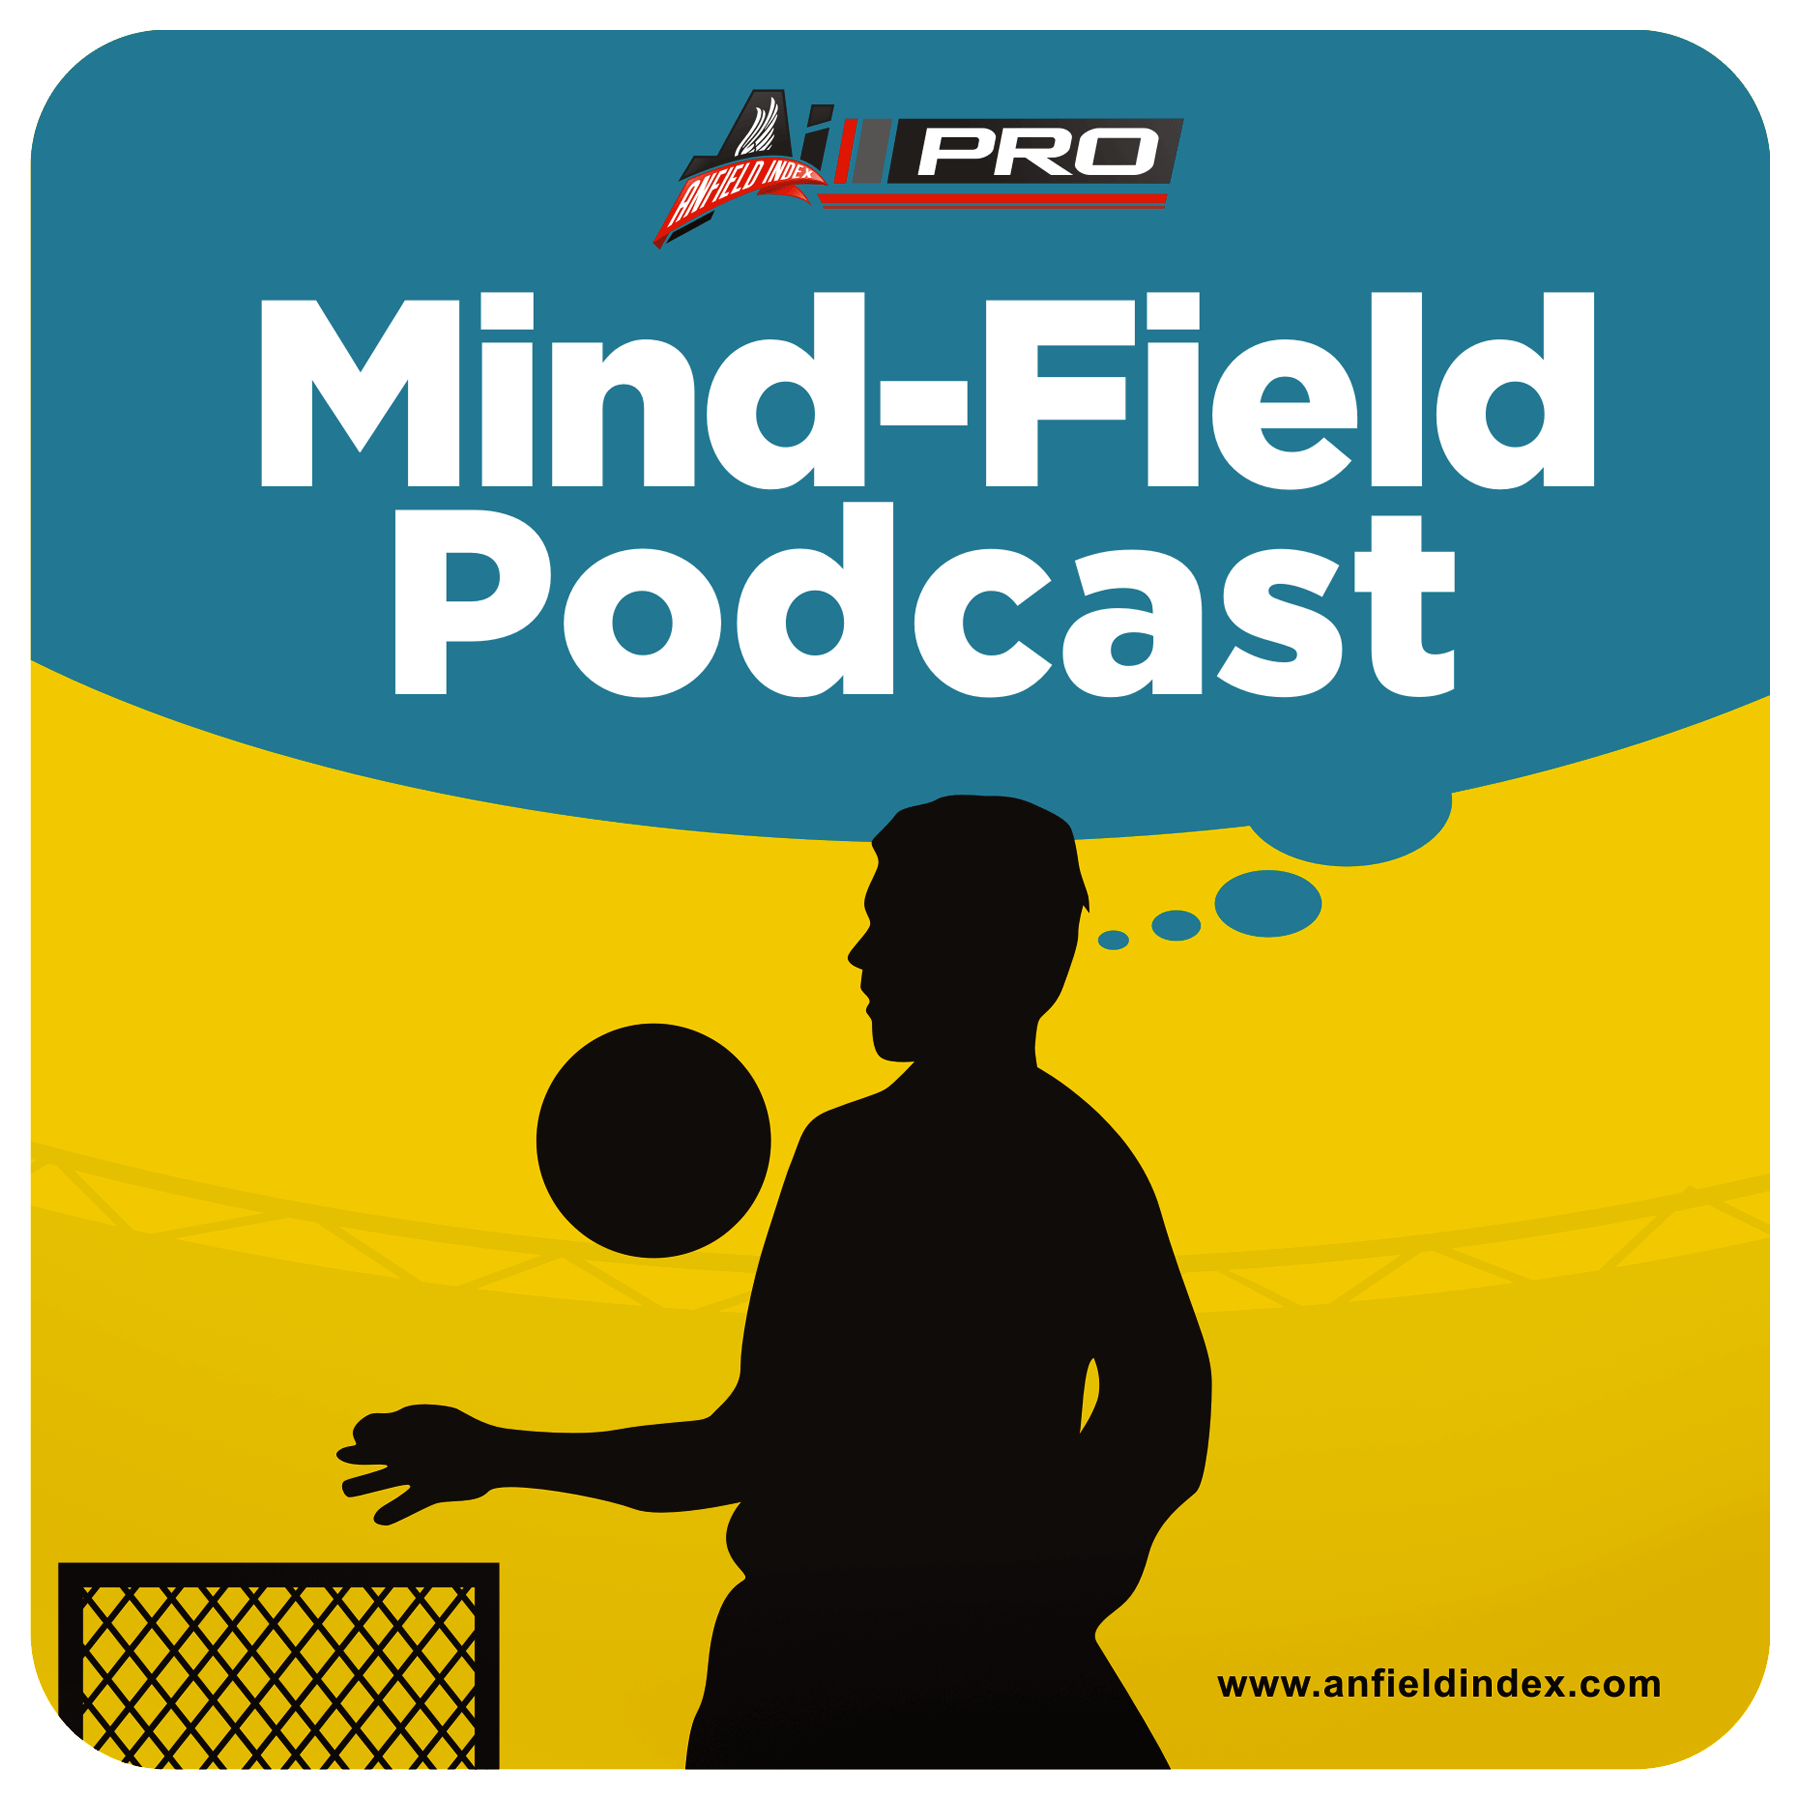 The Mind-Field Podcast: Champions League Final Preview